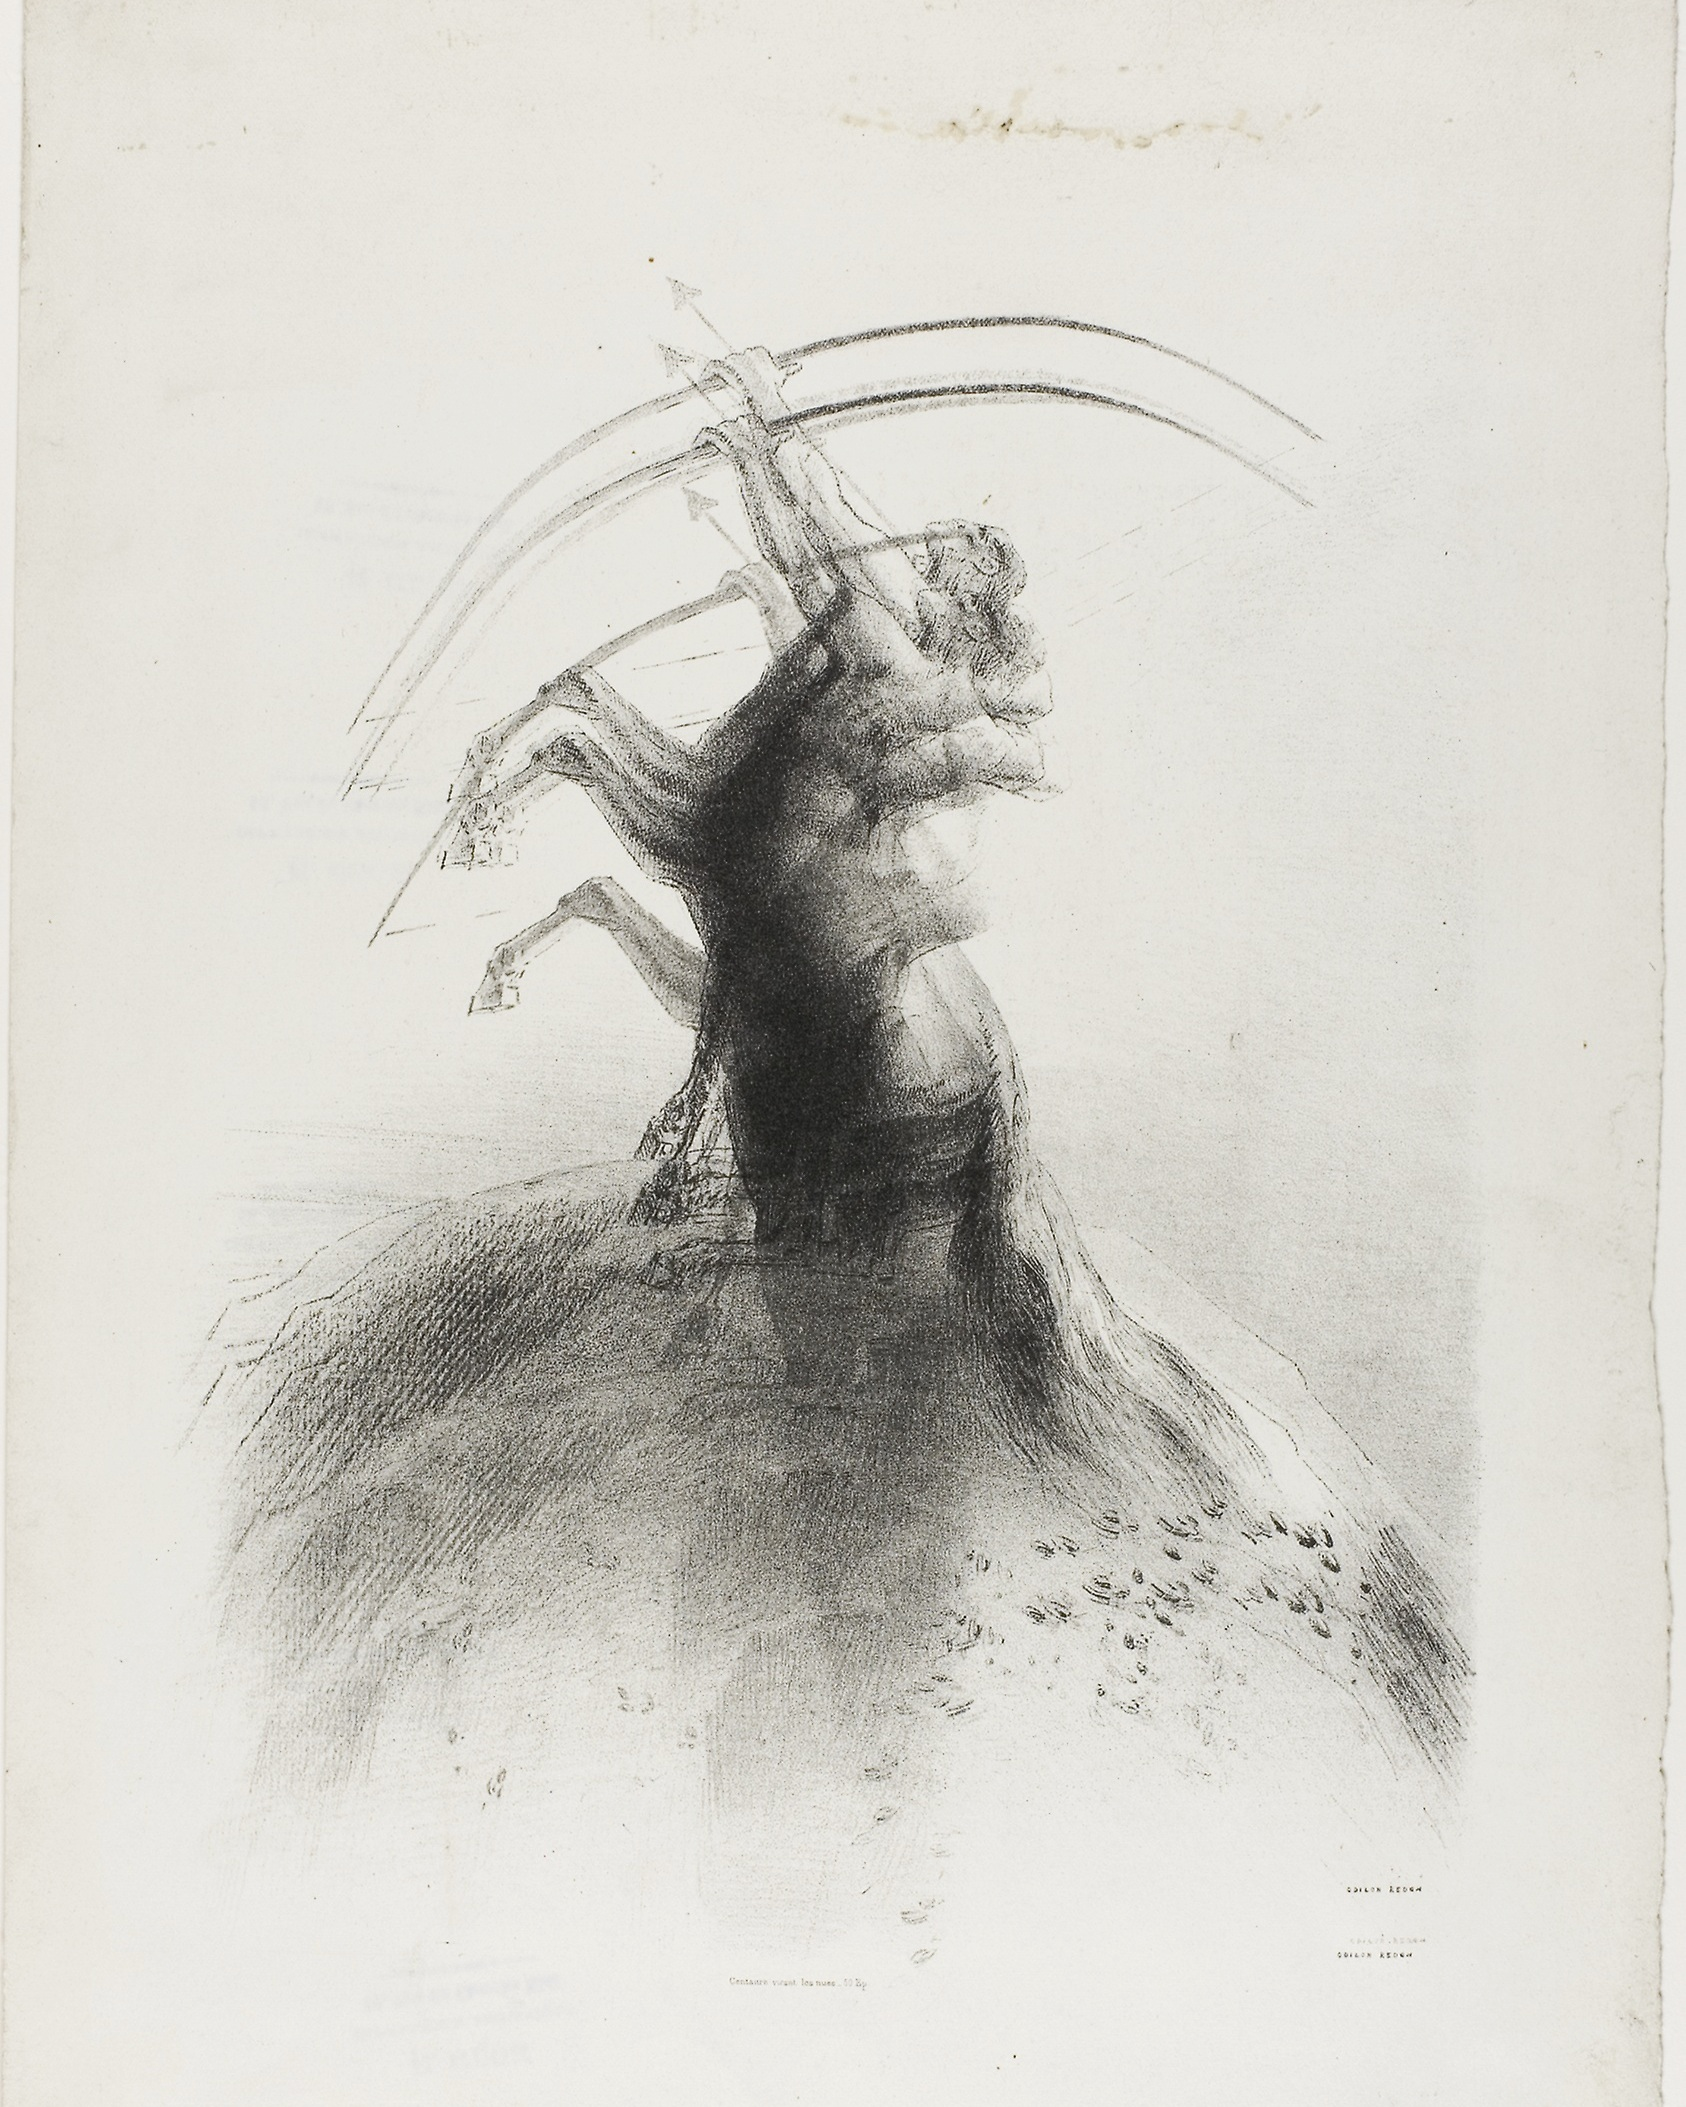 Odilon Redon, Centaur Taking Aim at the Clouds, 1895, AIC